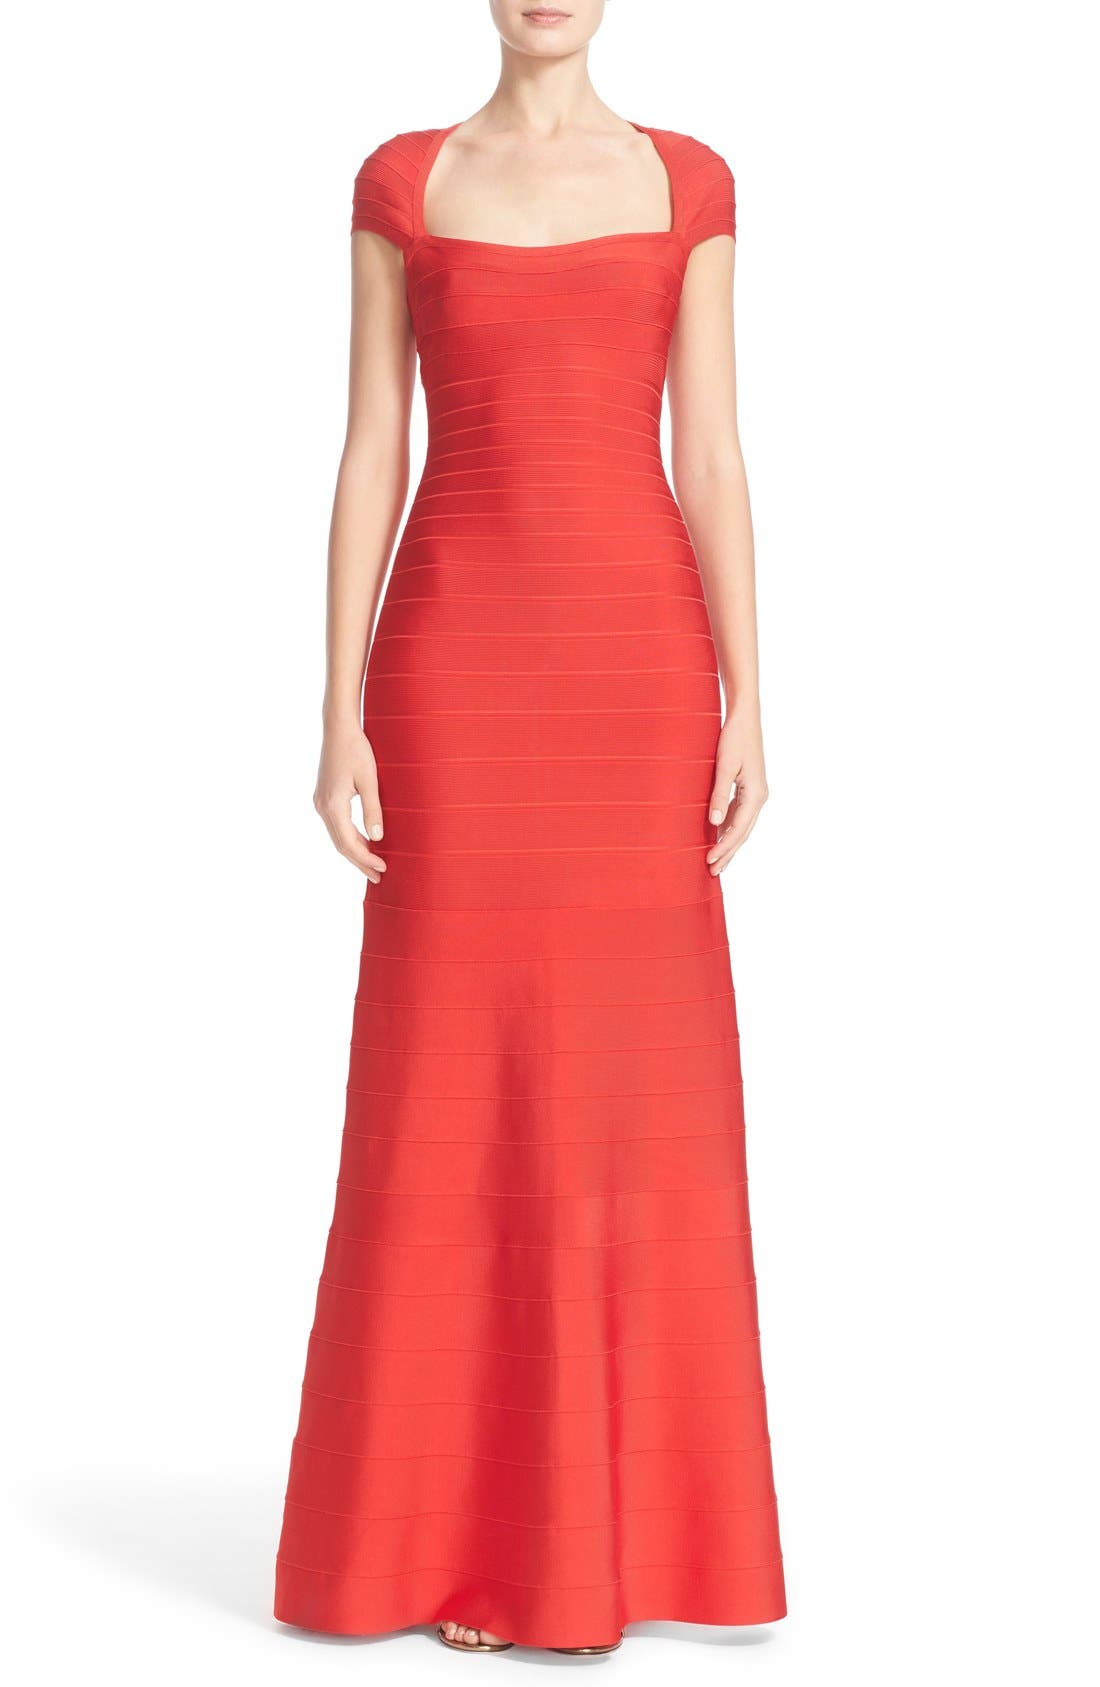 HERVE LEGER Open Back Bandage Gown